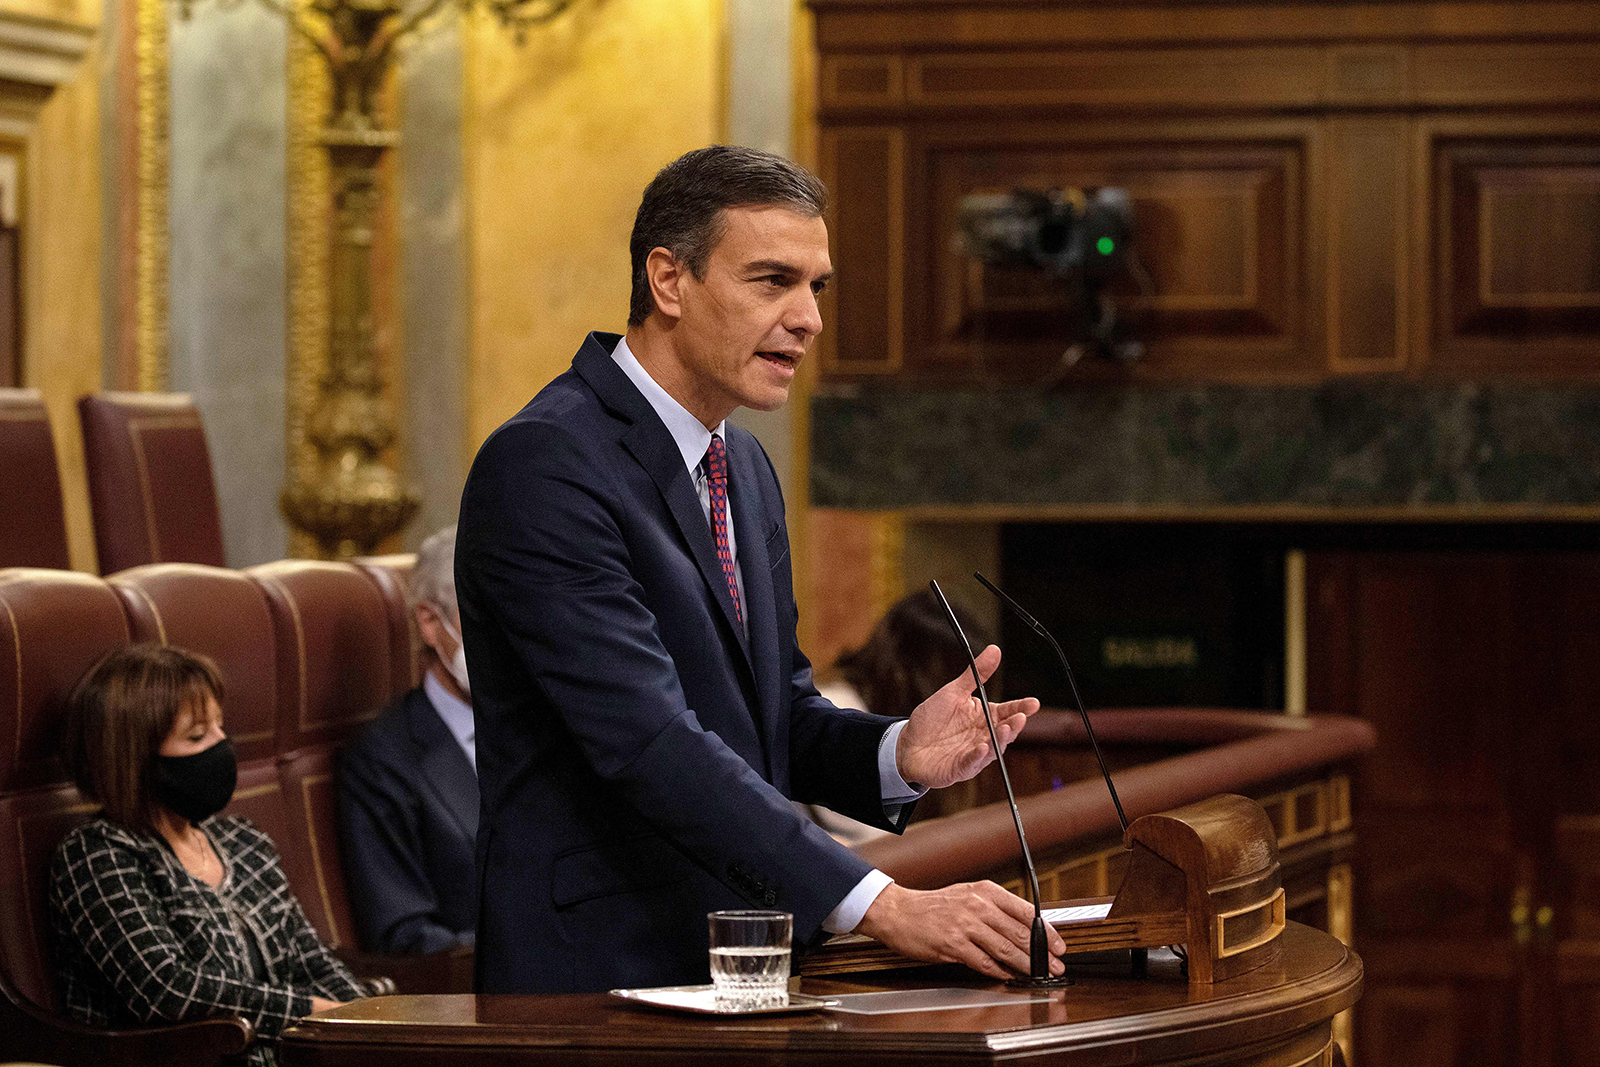 Spanish Prime Minister Pedro Sanchez addresses a parliamentary session in Madrid on October 22.